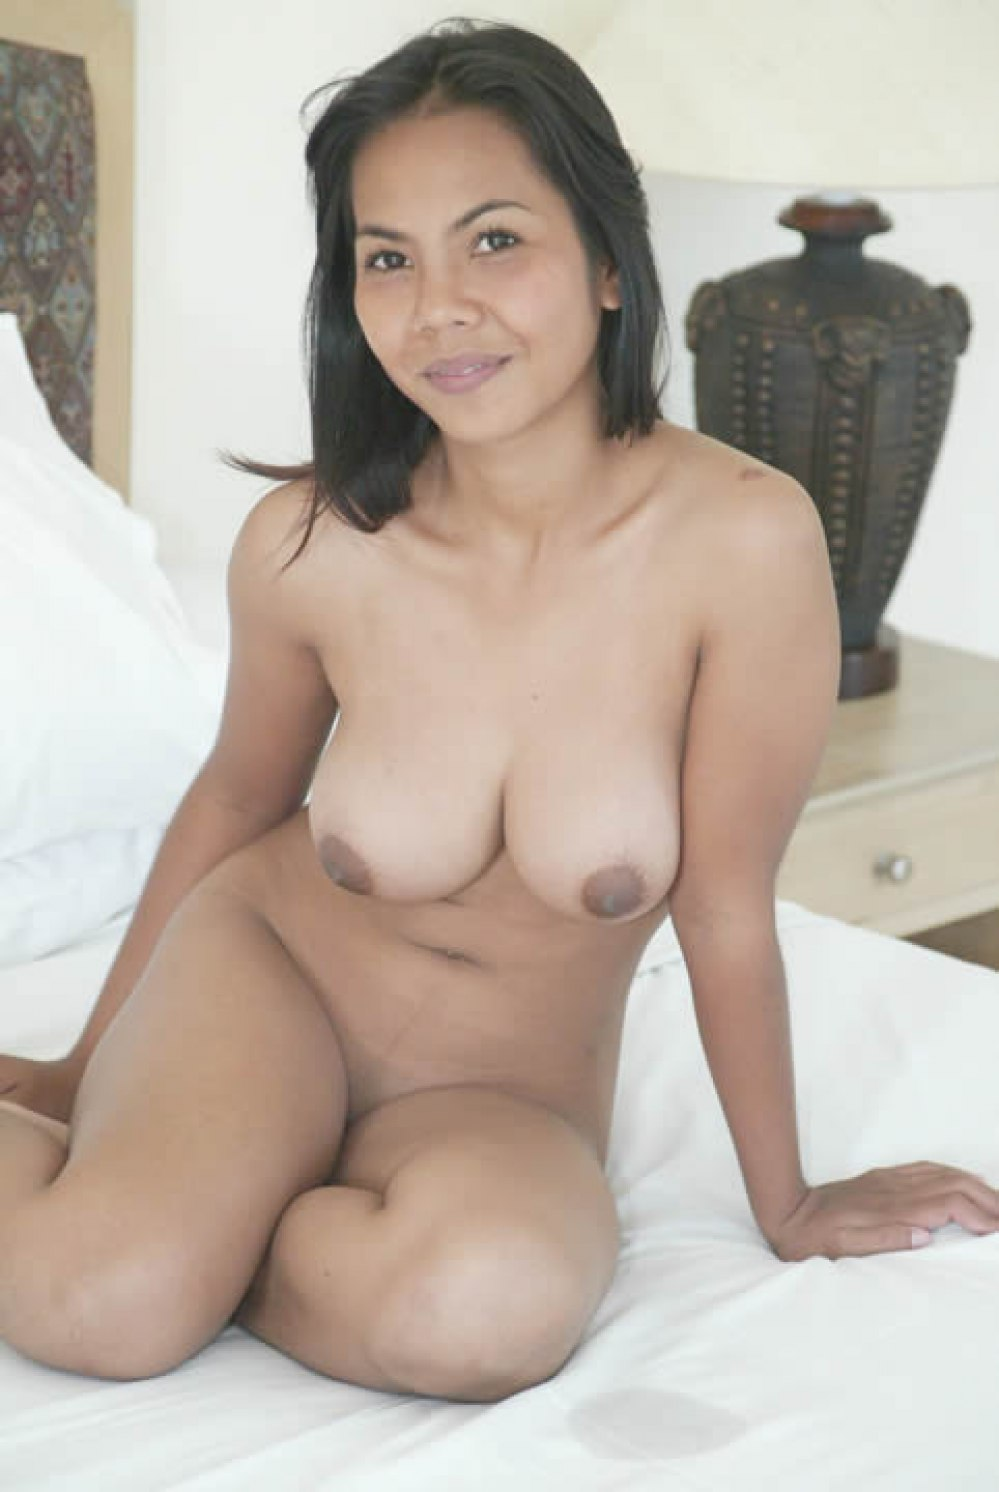 Fucking hot Blackasian for asian dating would